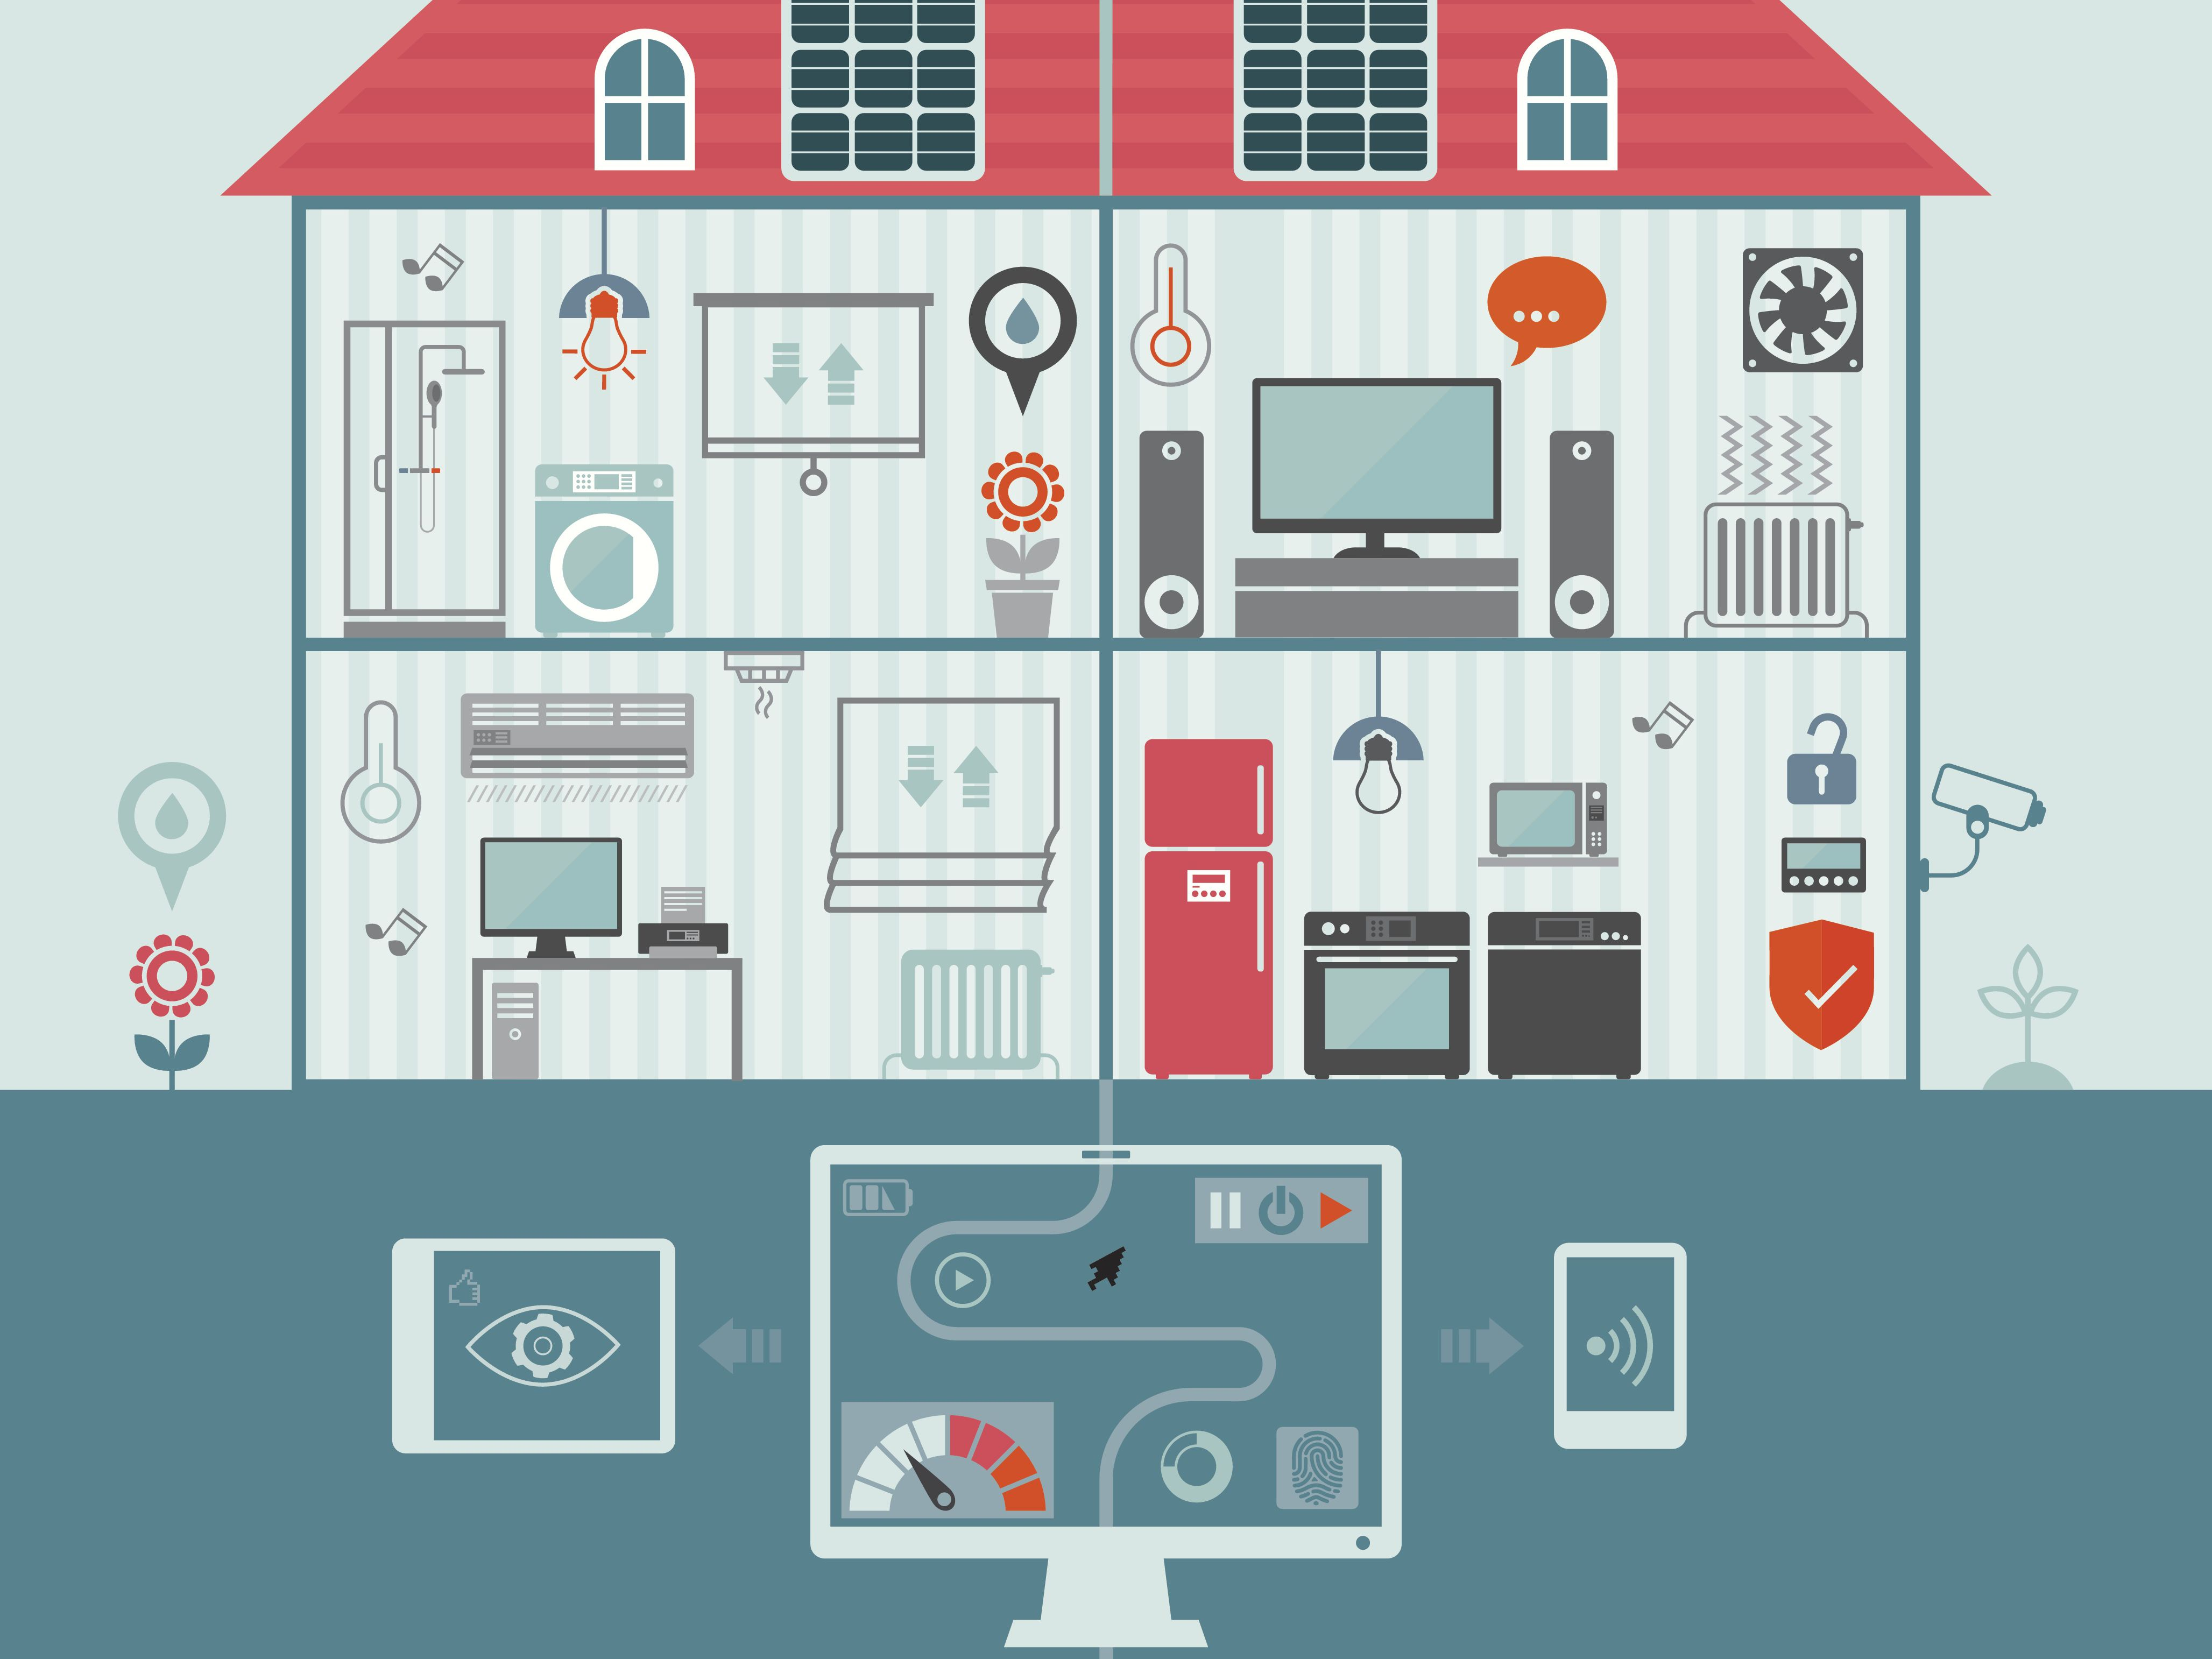 Wiring Closets For Home Network Automation Equipment